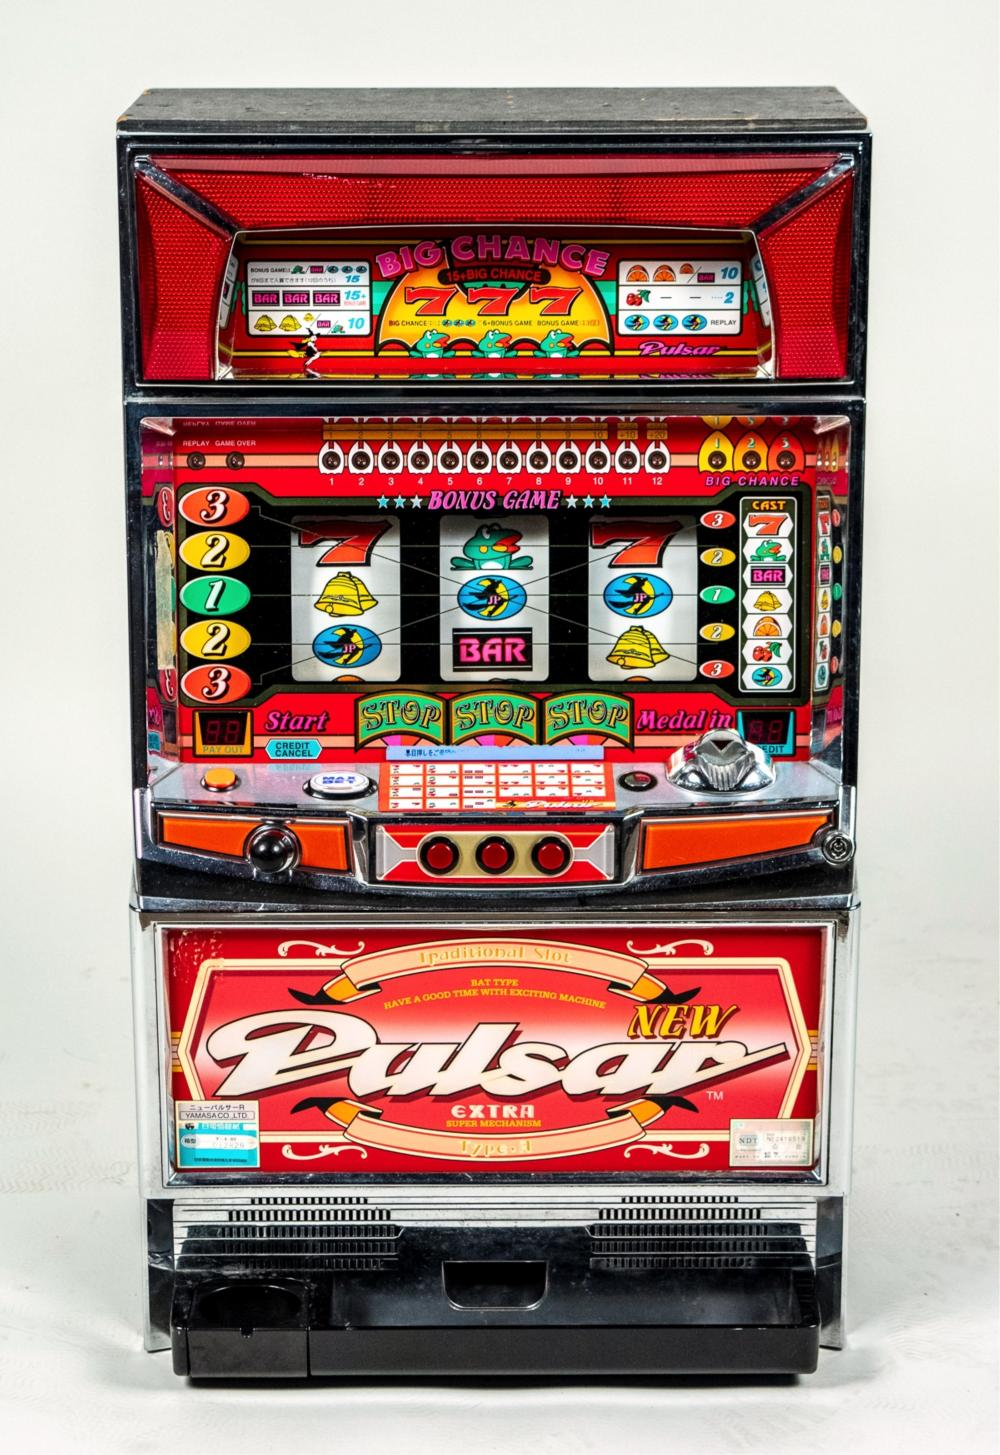 Toys R Us Slot Machines : Yamasa new pulsar type r slot machine